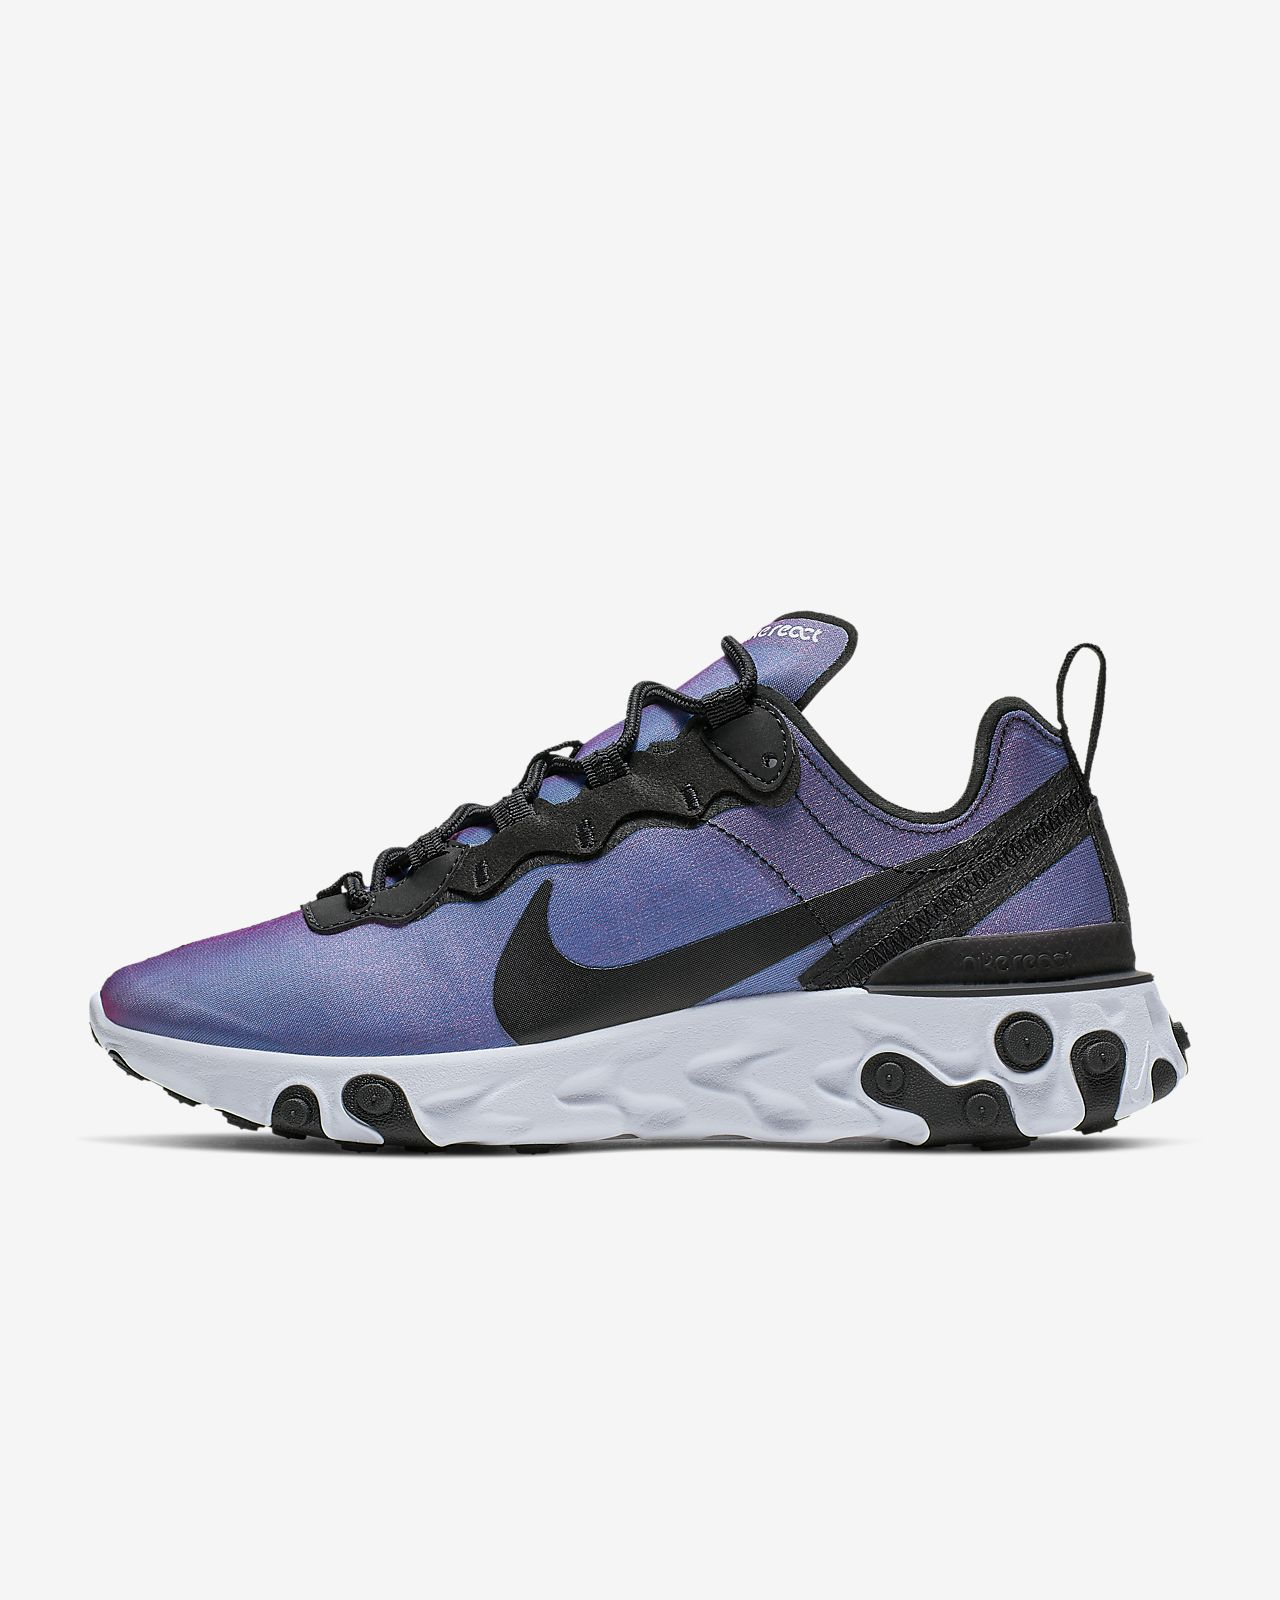 Dámská bota Nike React Element 55 Premium